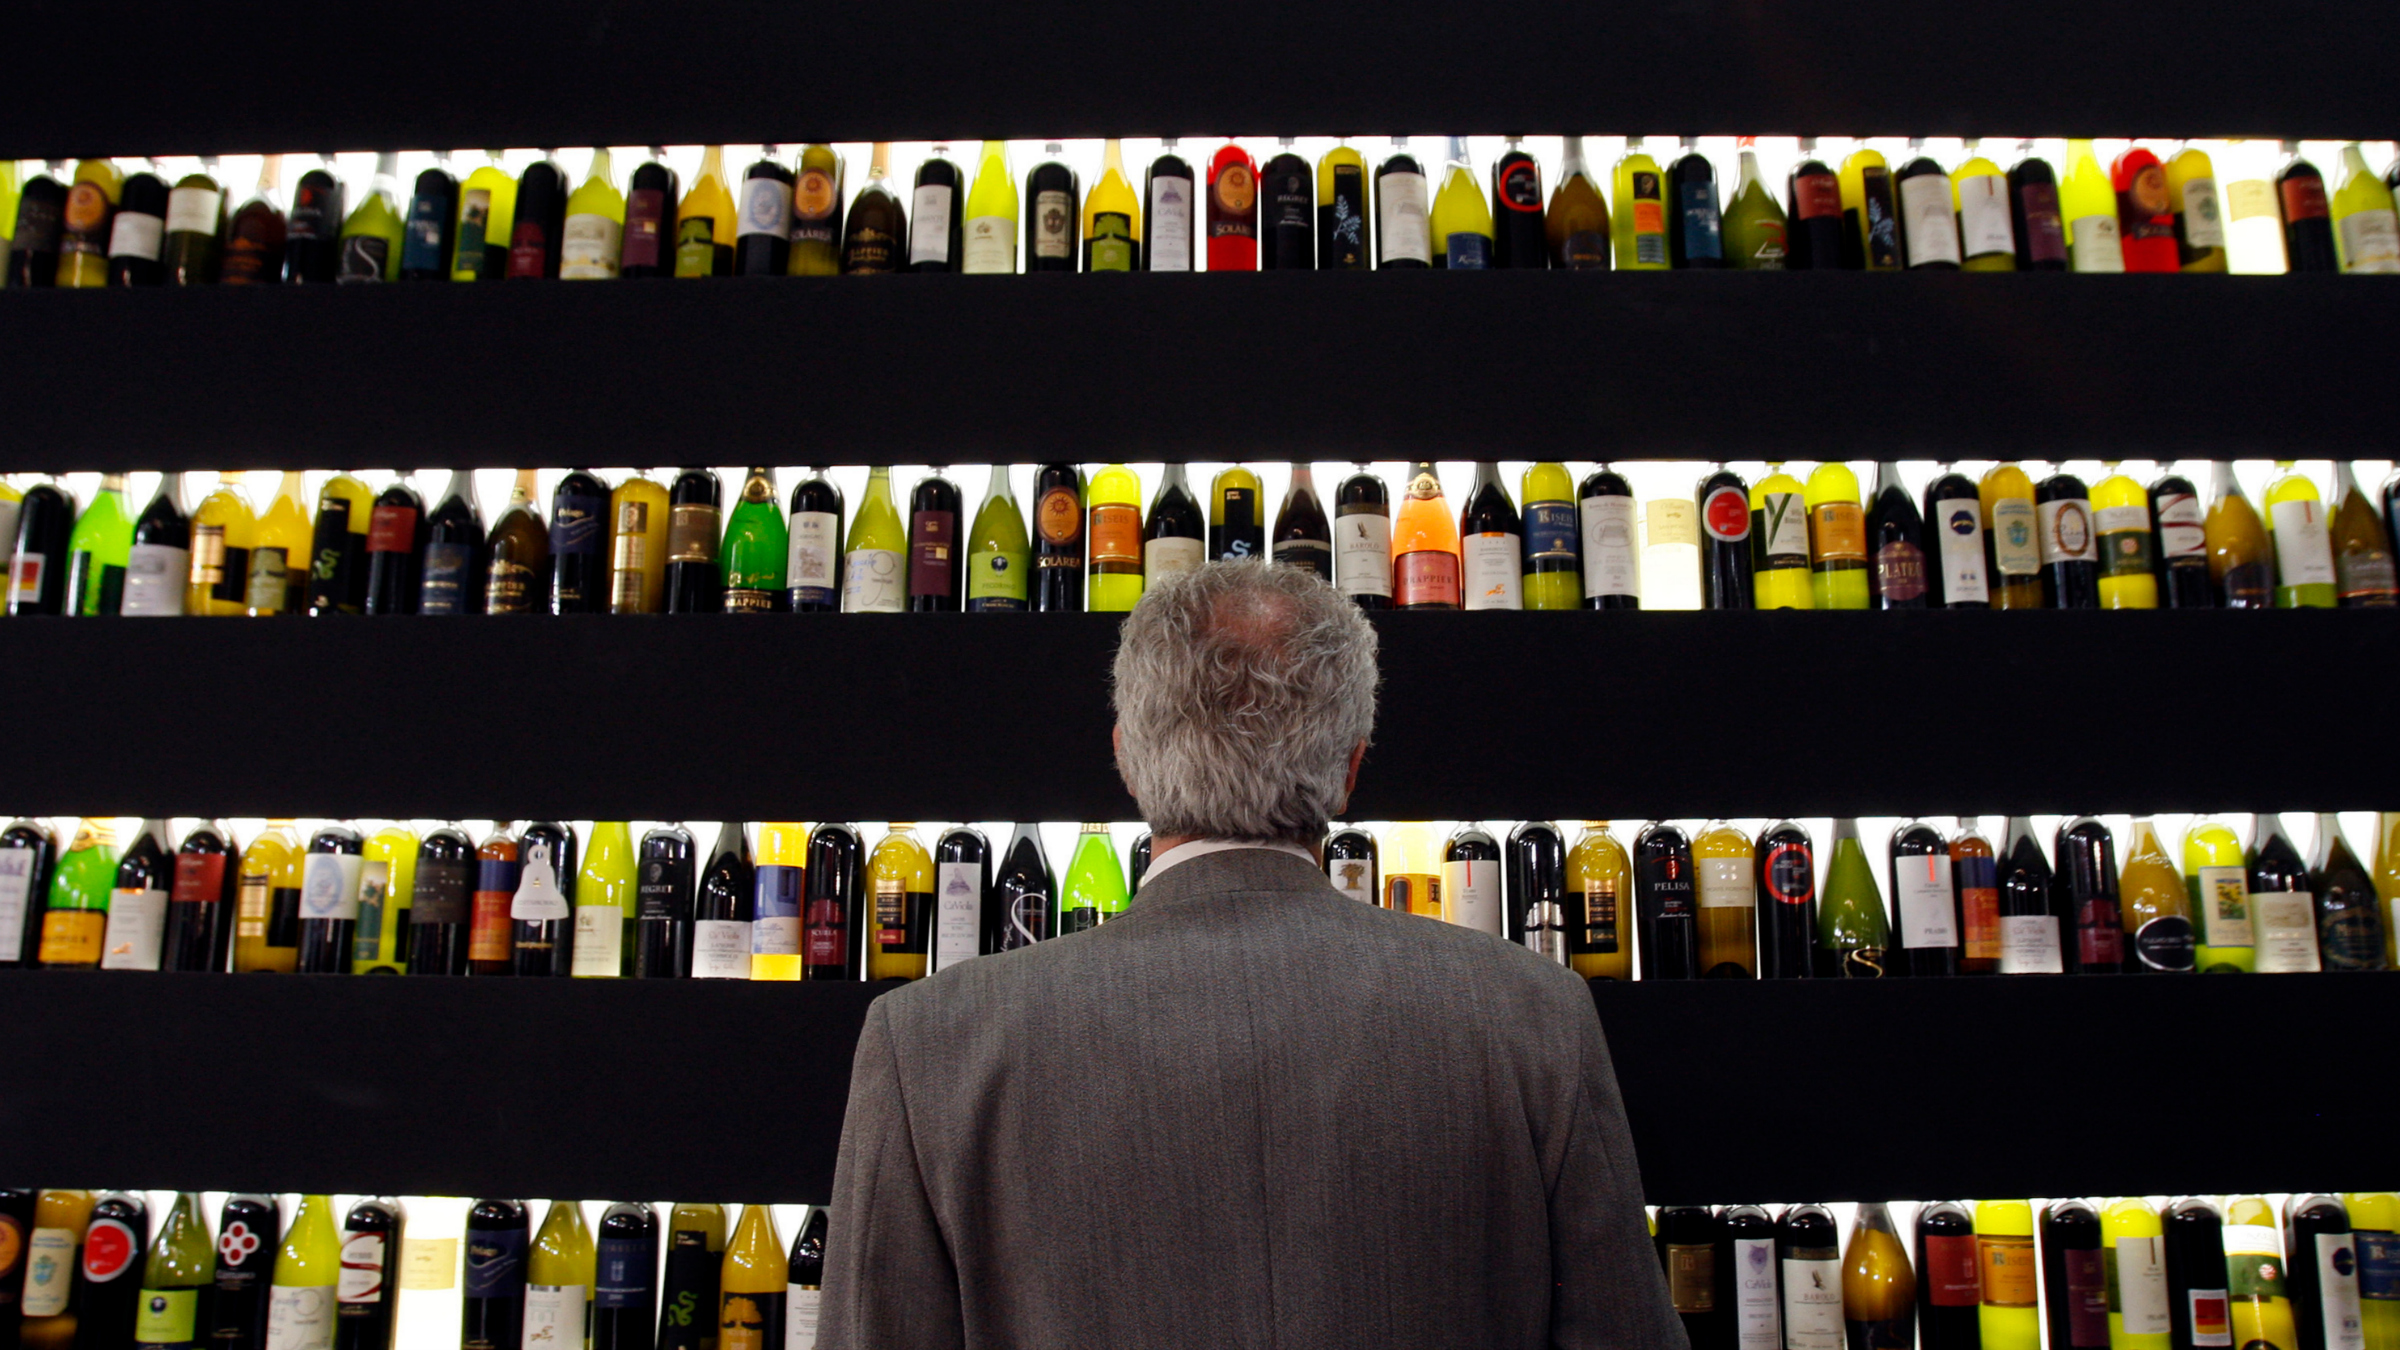 A man looks at bottles of wine on display at the Vinitaly wine expo in Verona.